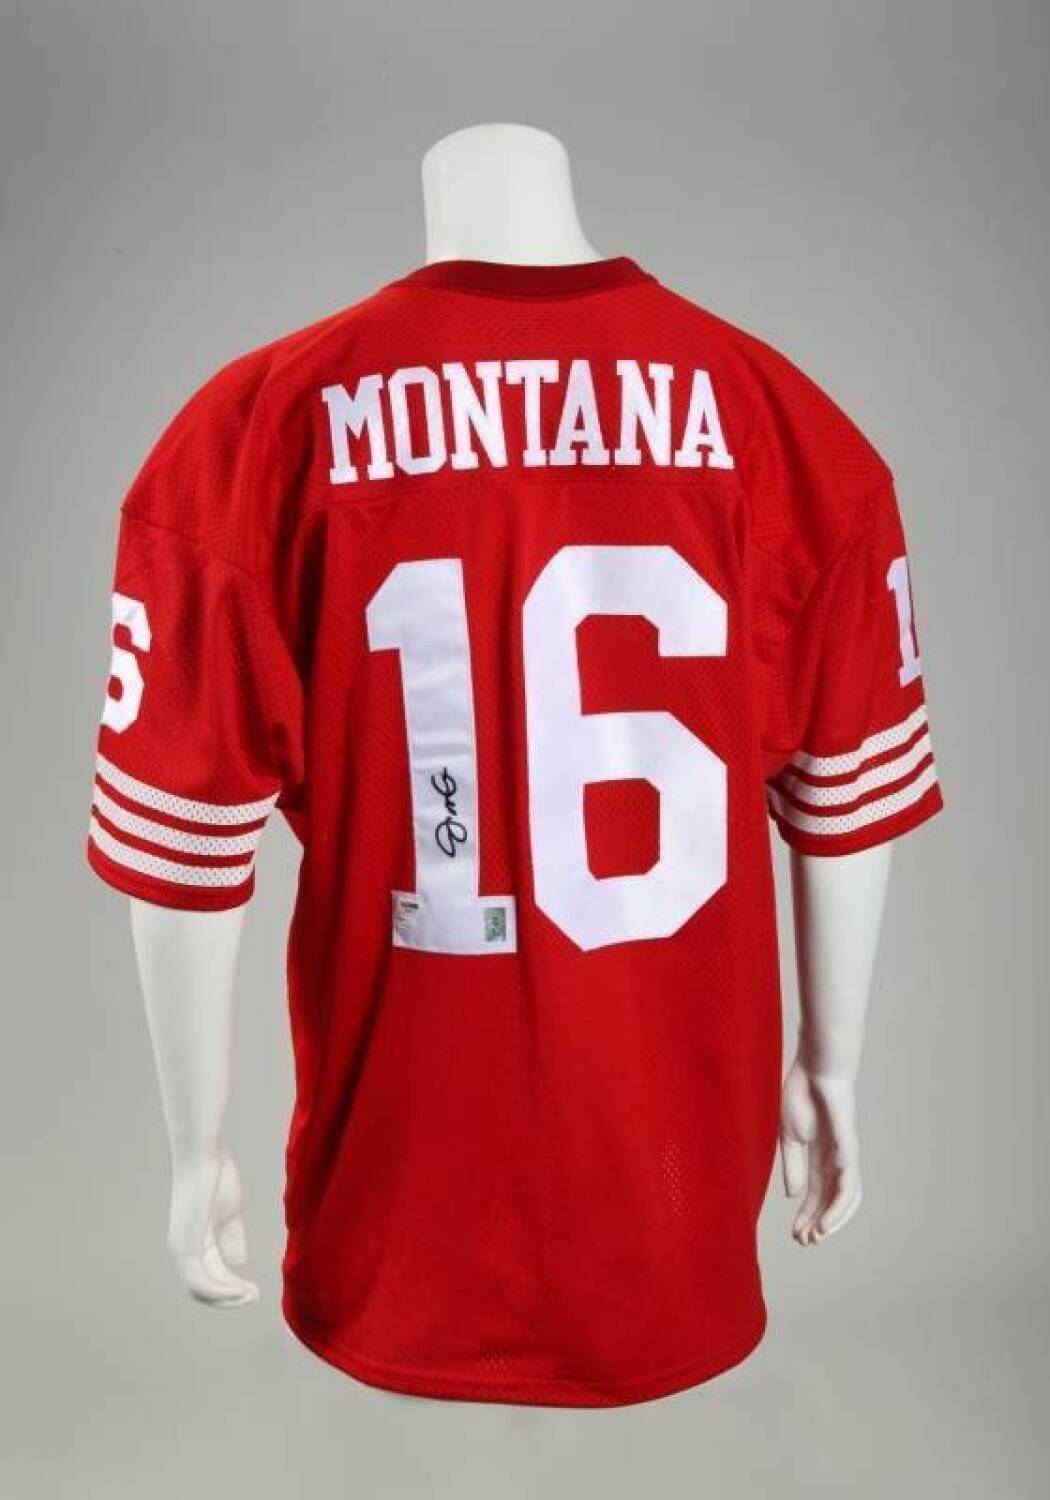 separation shoes f1ed4 bbddb JOE MONTANA SIGNED SAN FRANCISCO 49ers JERSEY - Price ...